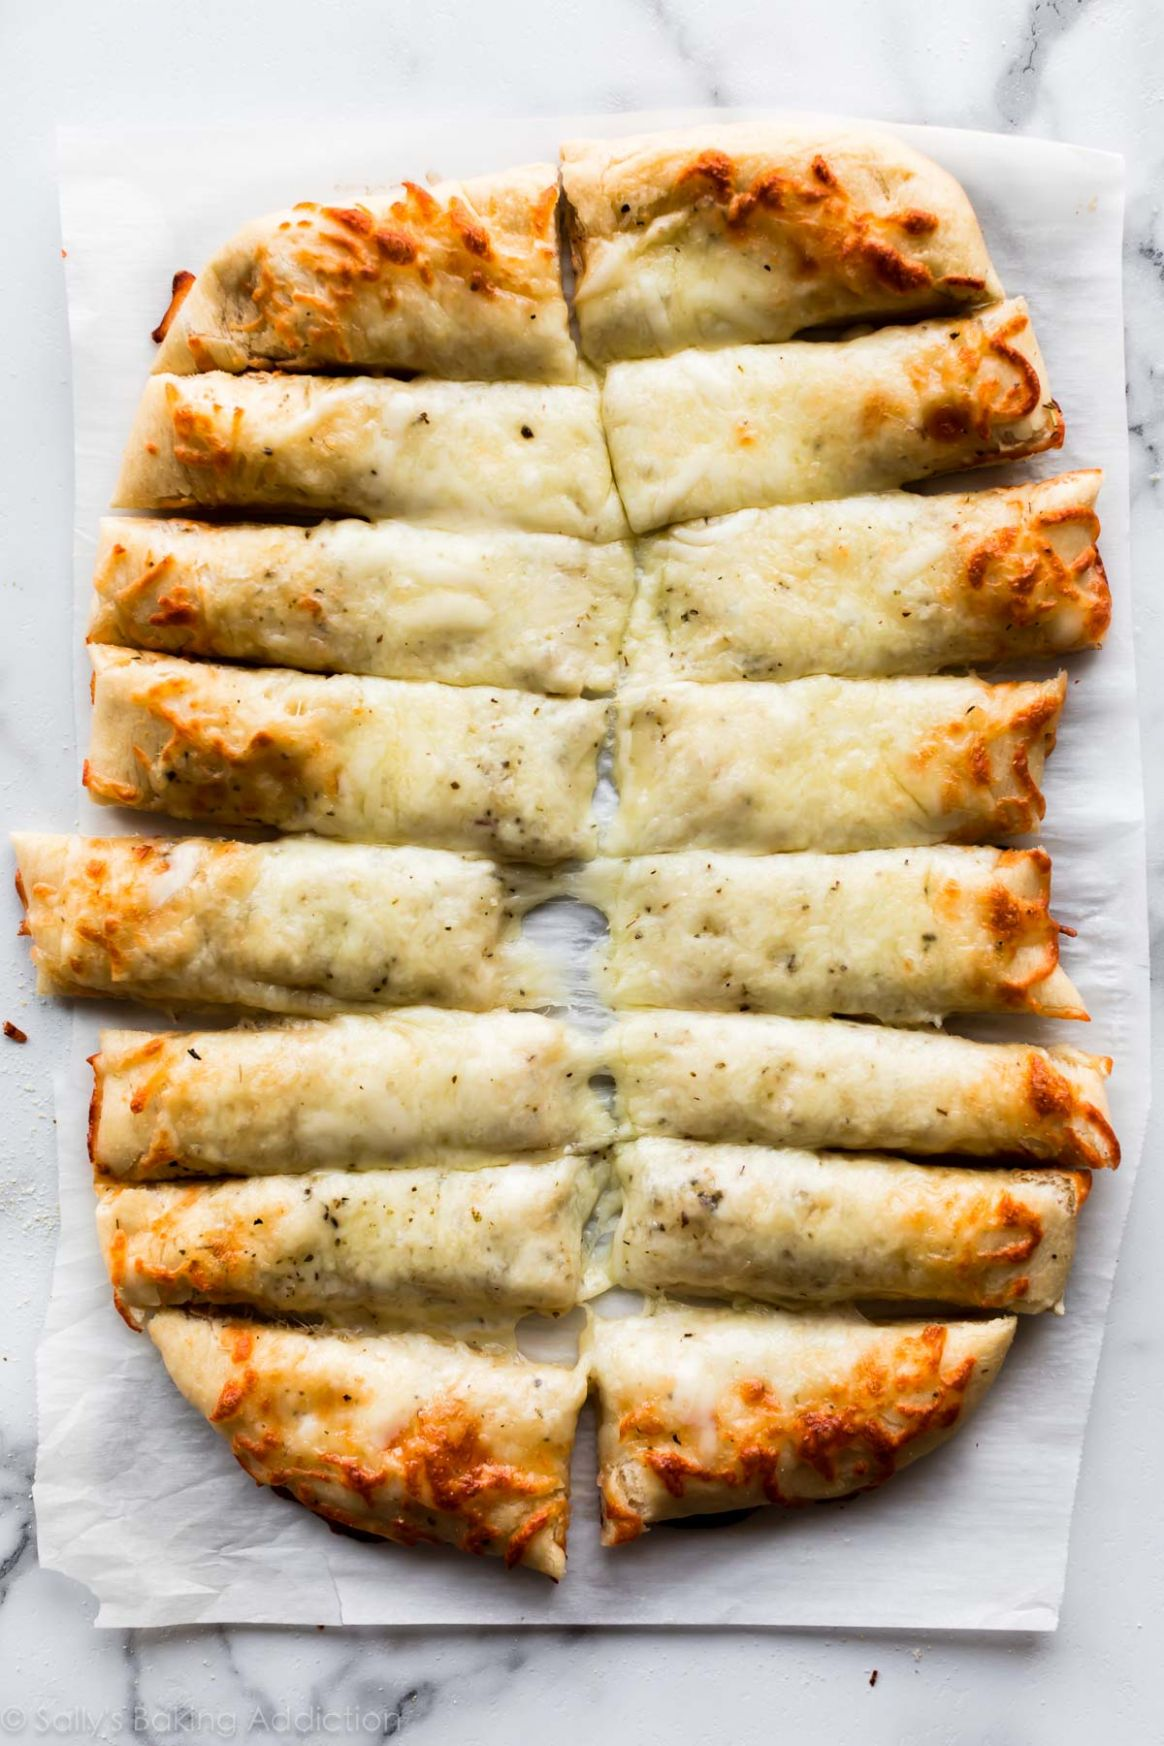 Cheesy Breadsticks Made from Pizza Dough - Recipes Using Pizza Crust